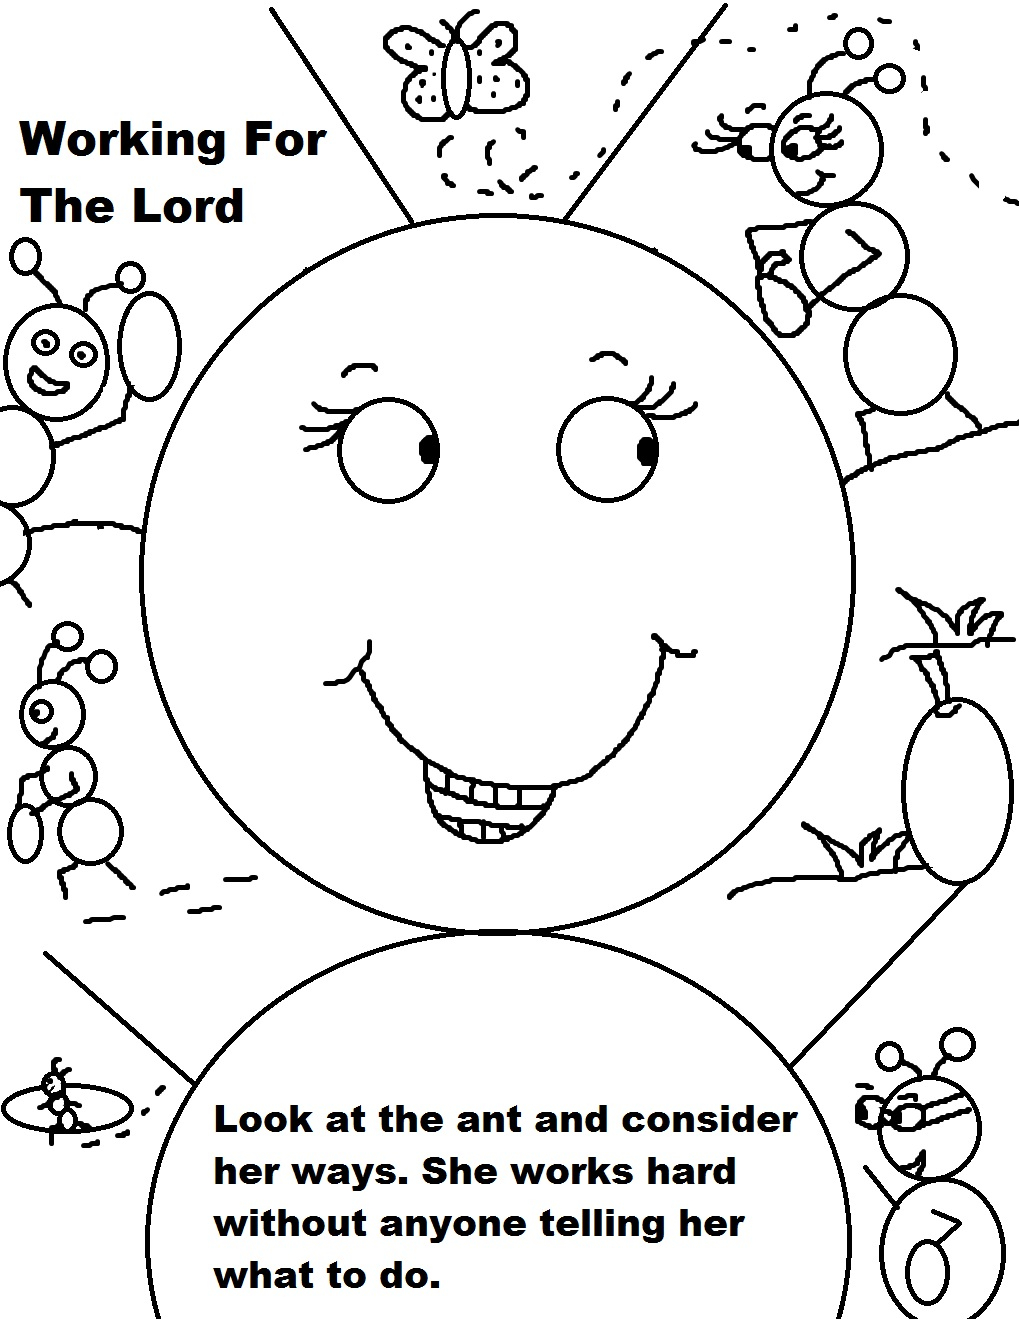 Coloring Pages Sunday School Lessons – Color Bros to Print Of 28 Sunday School Coloring Pages for Preschoolers Jesus Loves Gallery